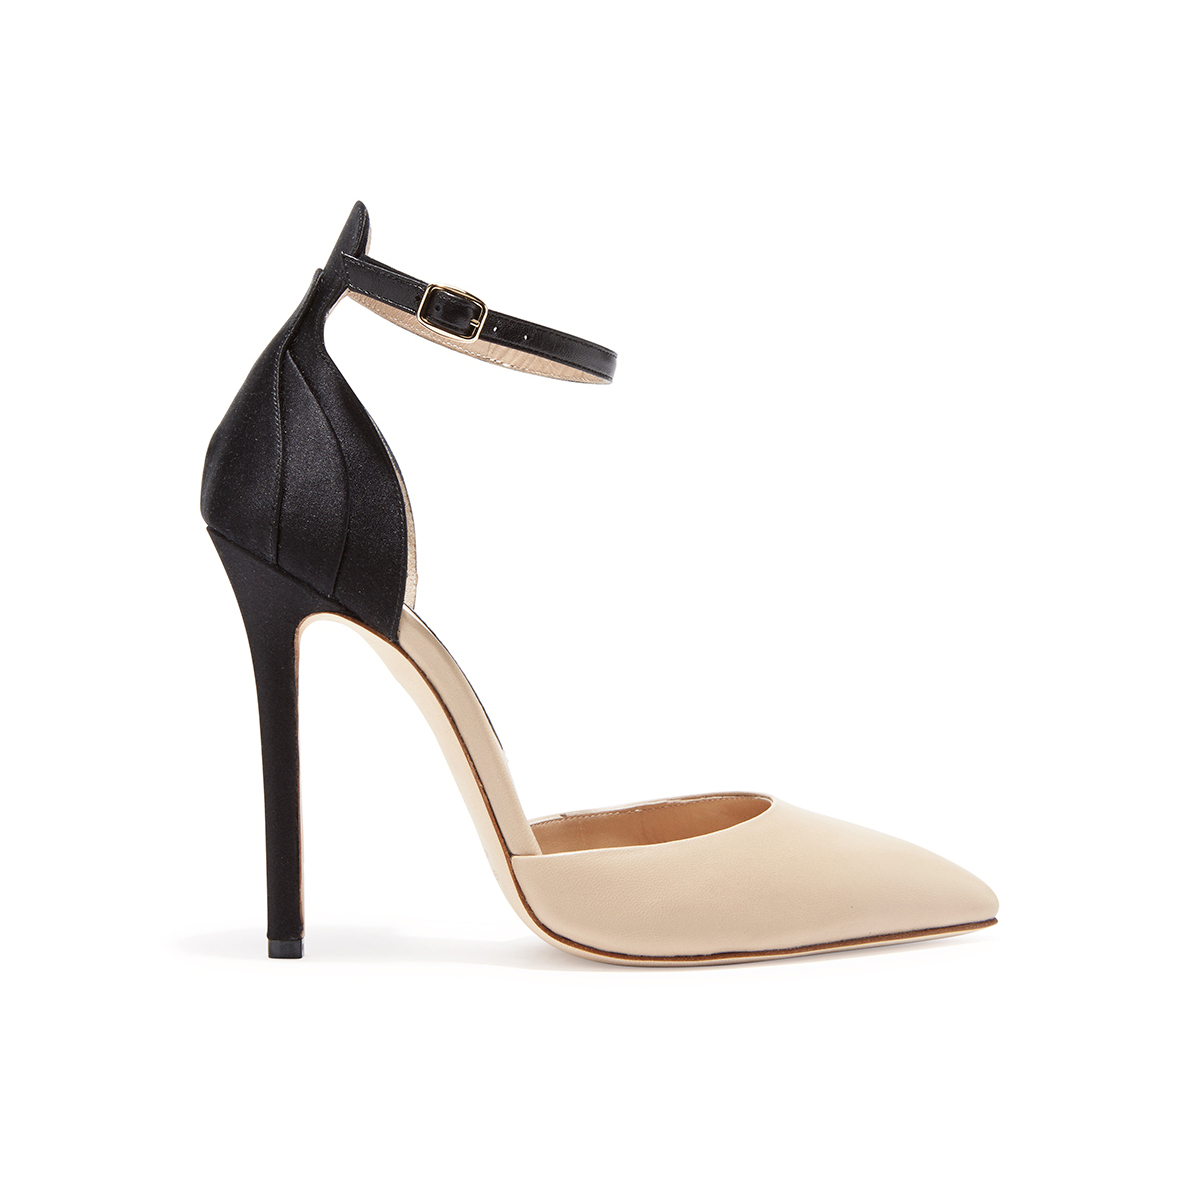 Zac Posen Two-Tone Pumps